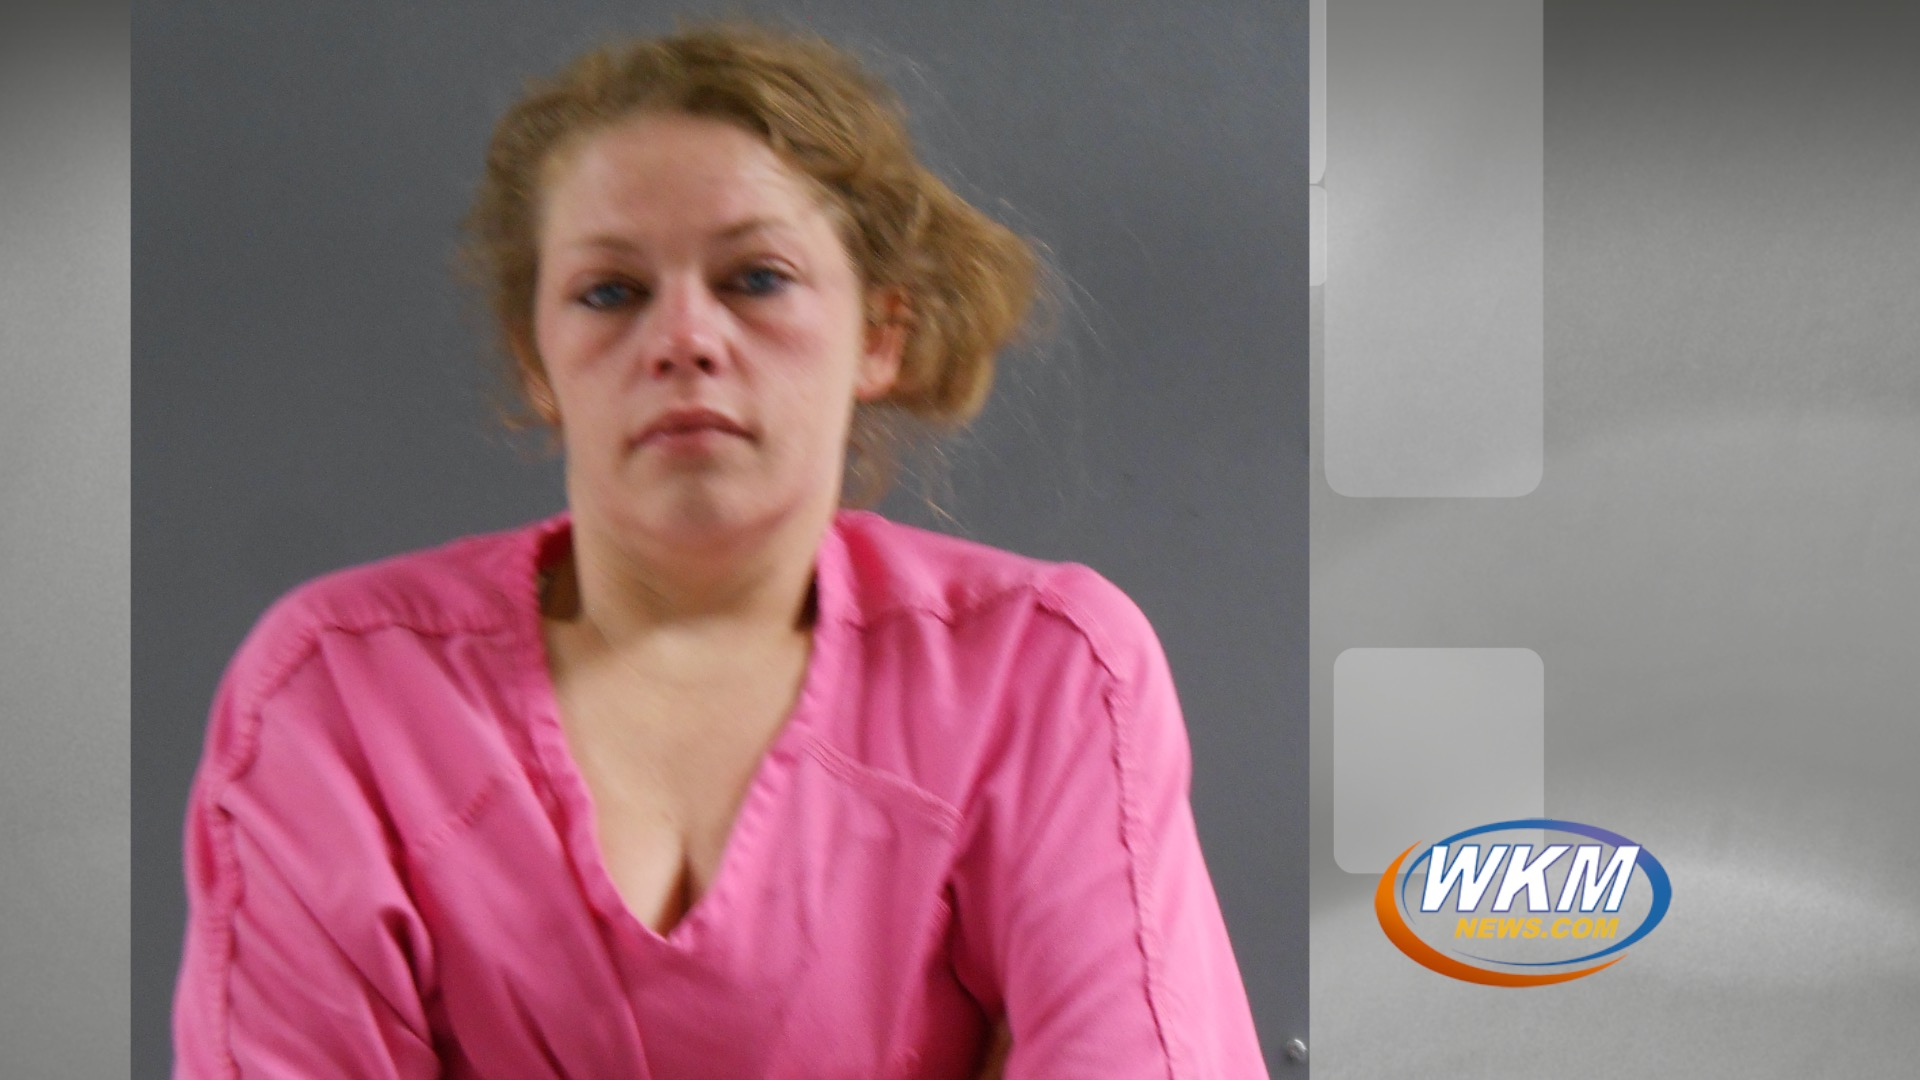 Switzerland County Woman Charged in Domestic Shooting